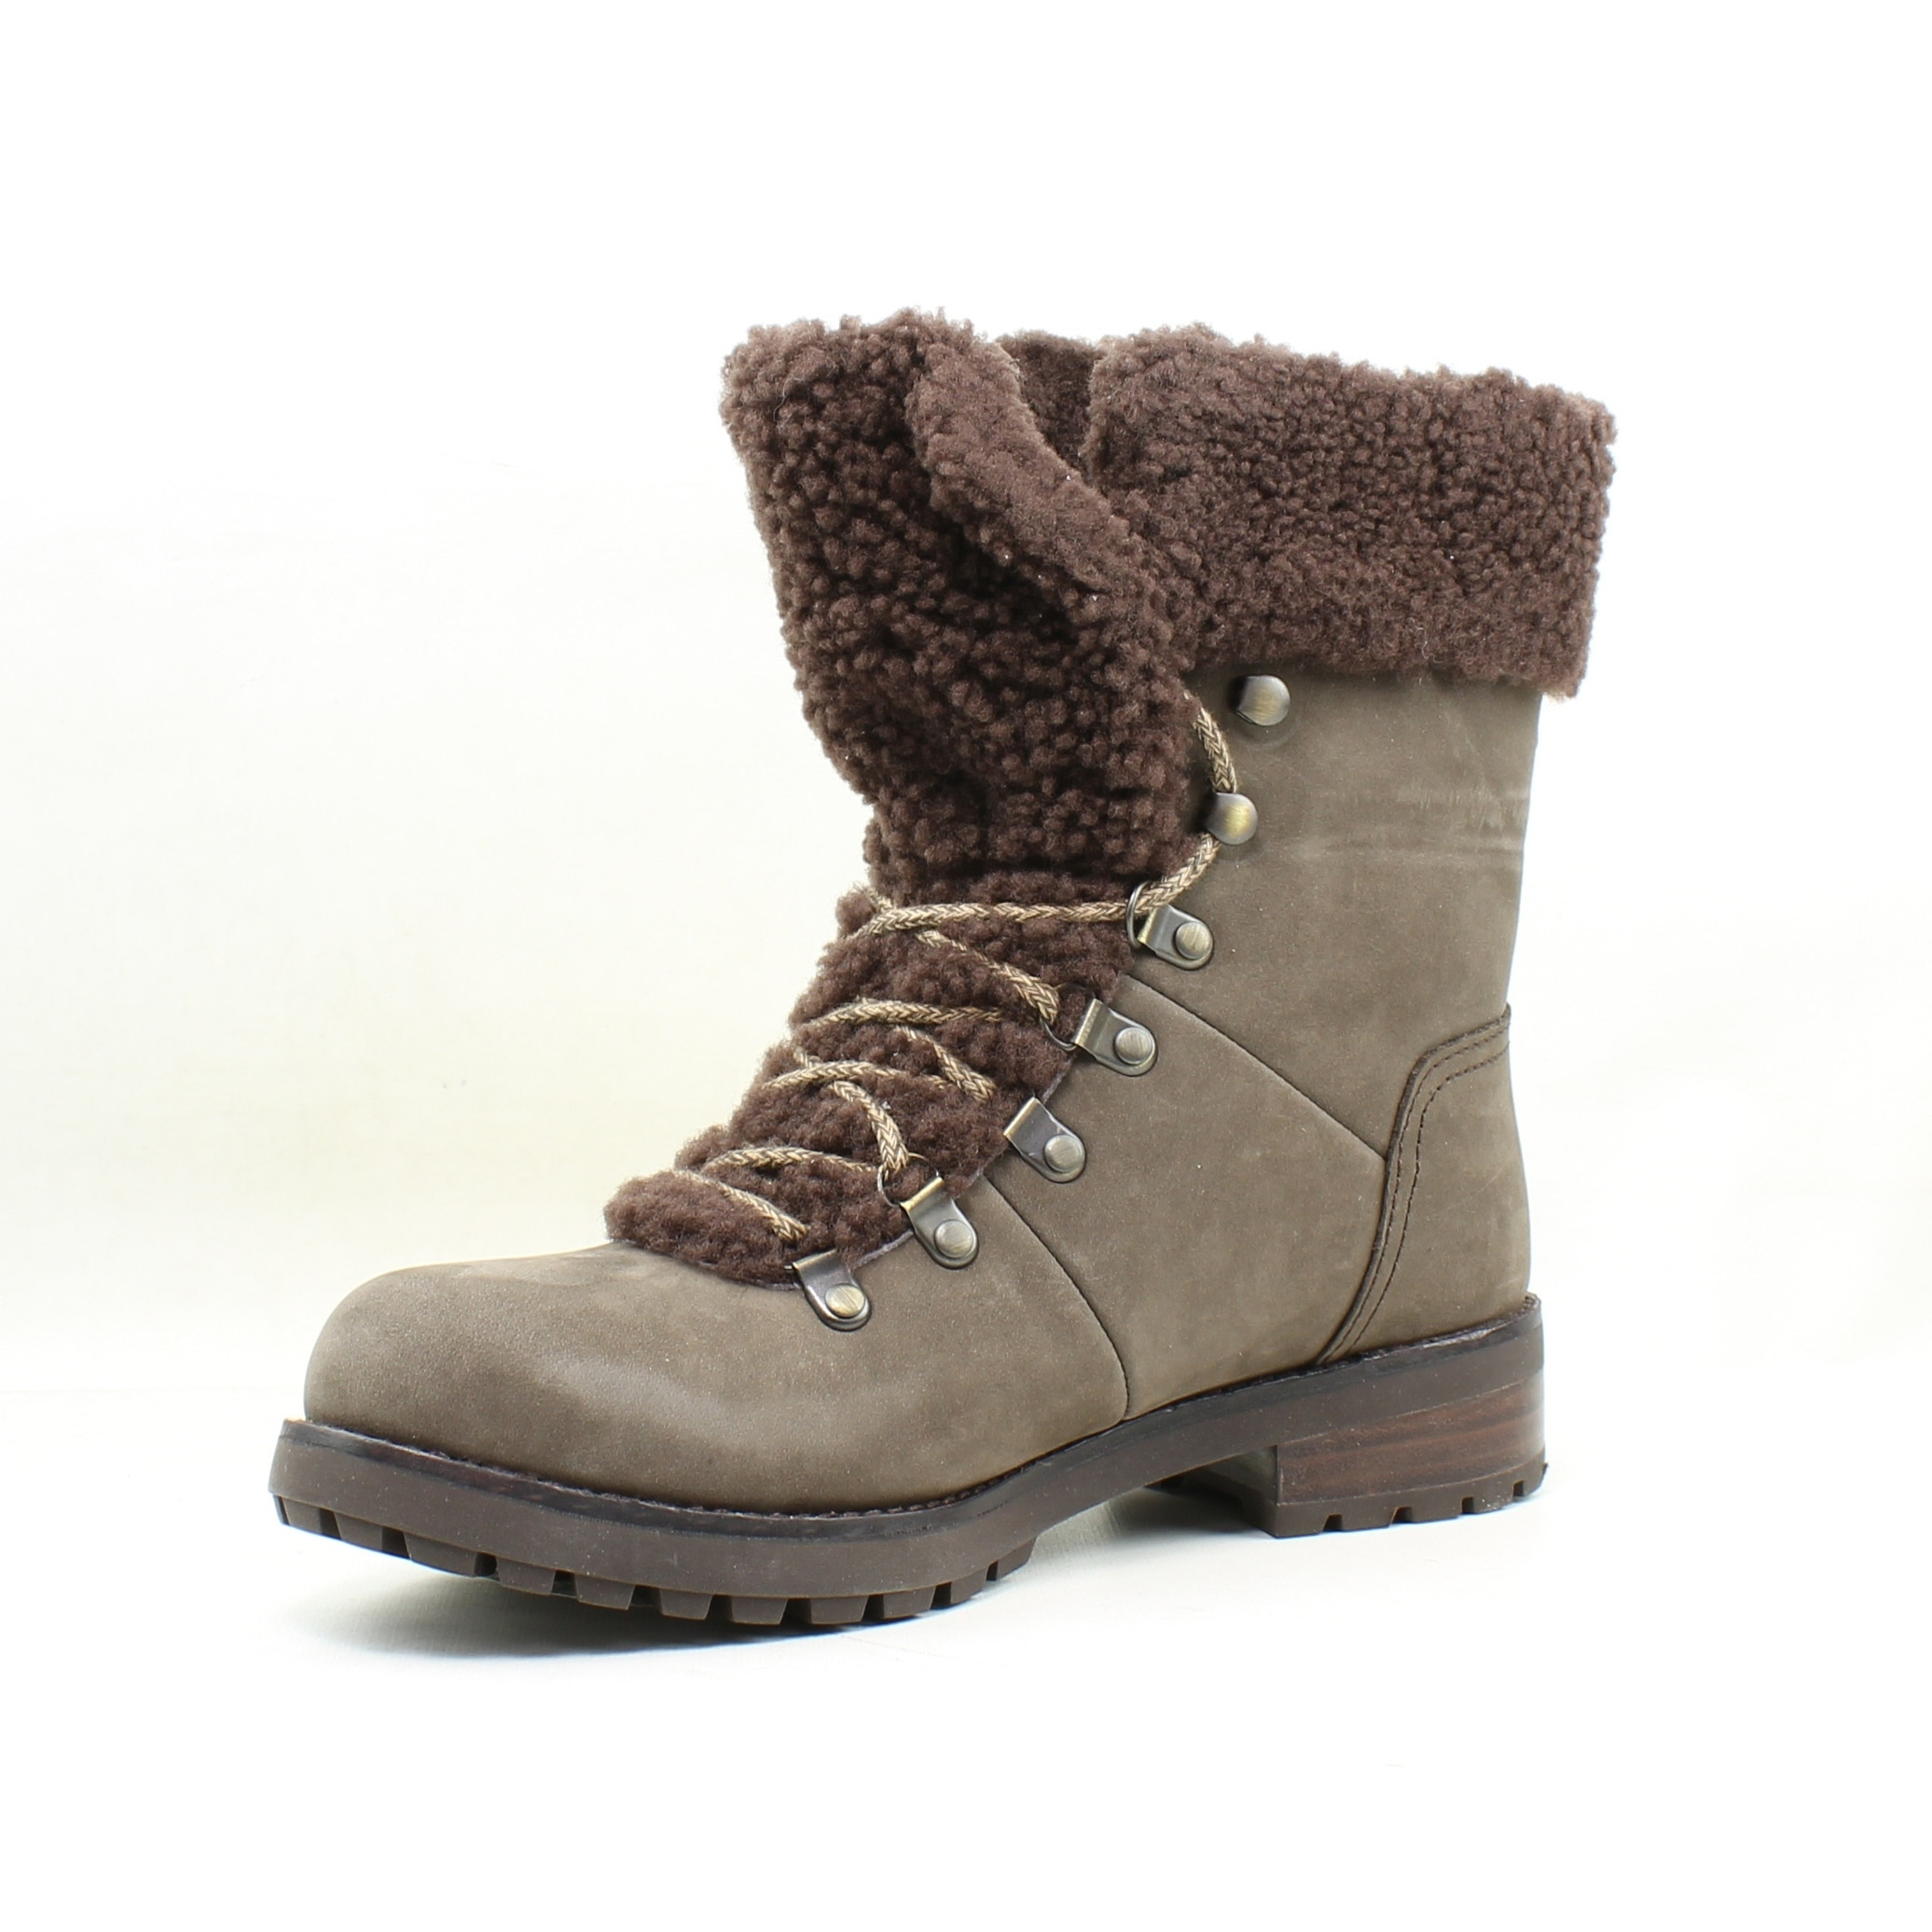 88c55554bf5 UGG Womens Fraser Stout Fashion Boots Size 7.5